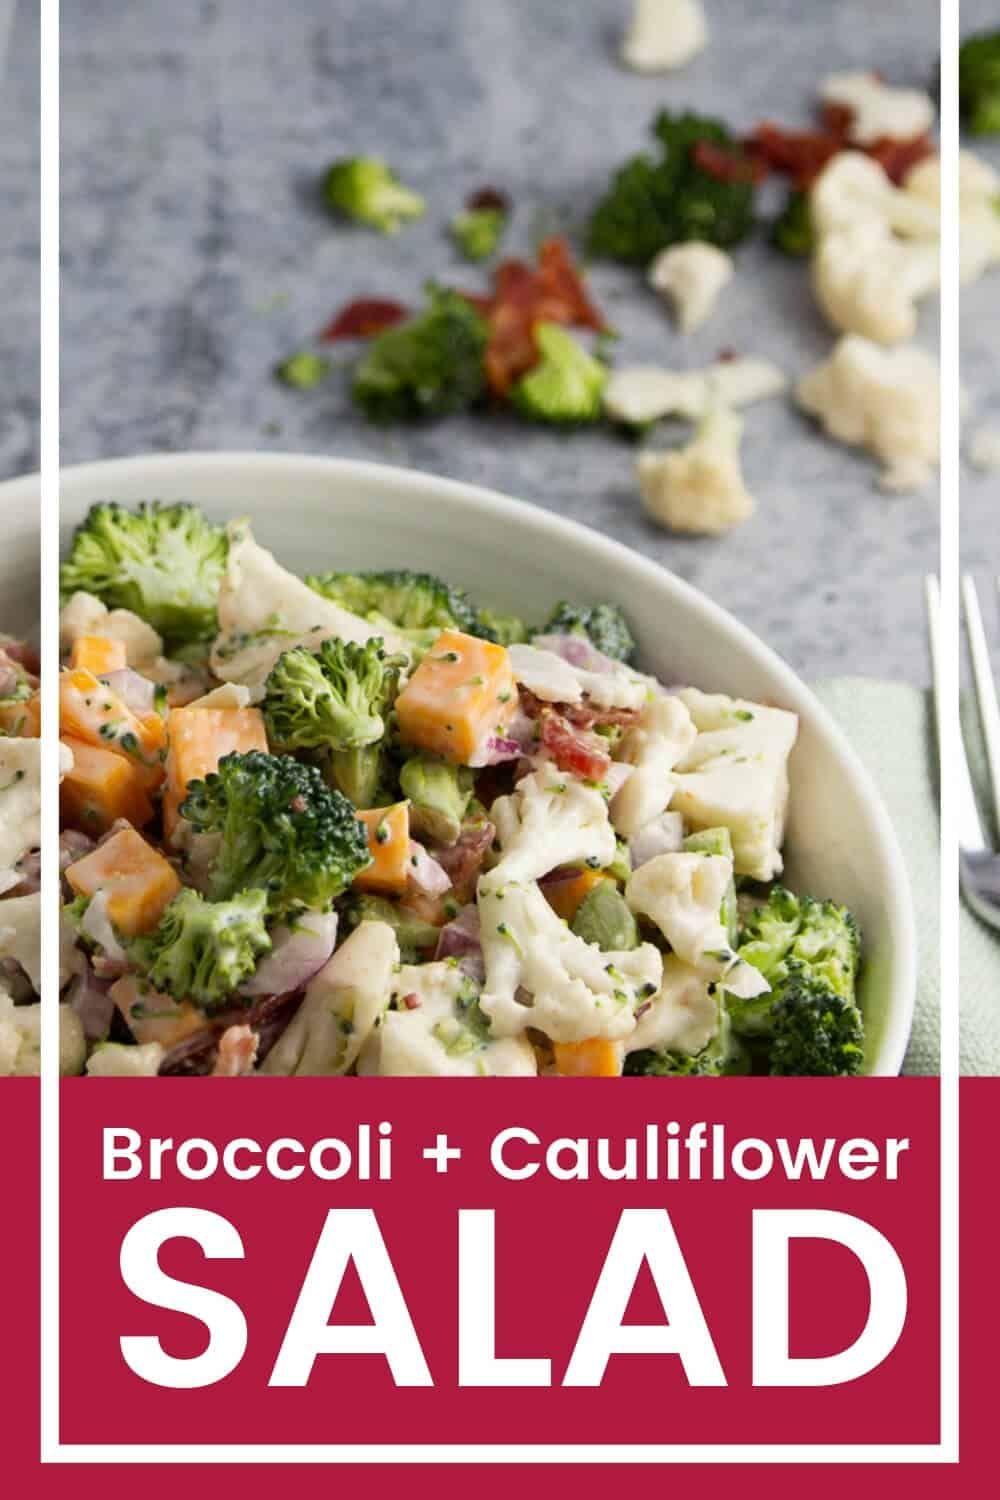 Broccoli, cauliflower, and crispy bacon make up a super simple salad